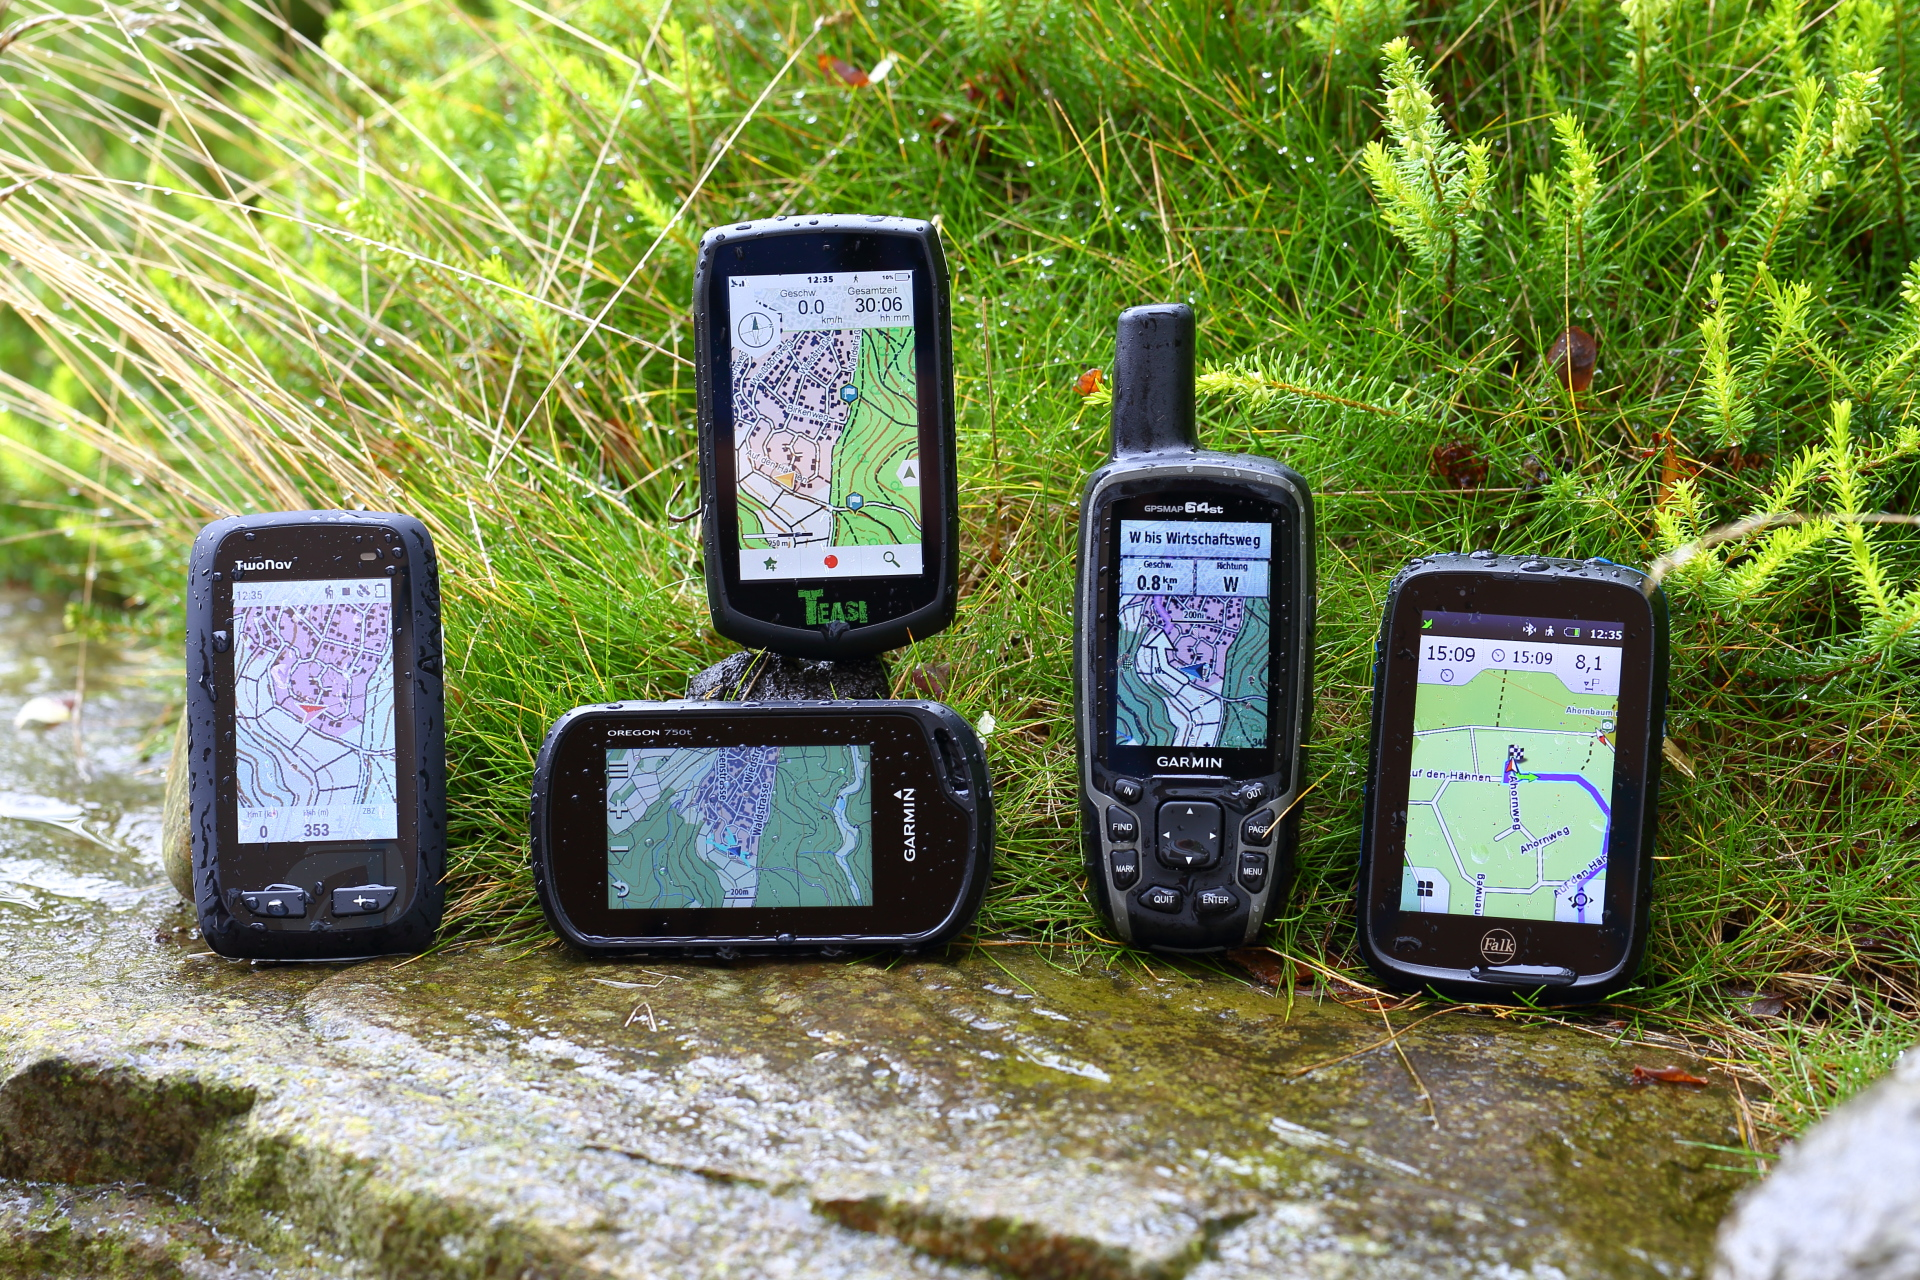 Gps Geräte Bergwandern : Top outdoor navi test u203a pocketnavigation.de navigation gps